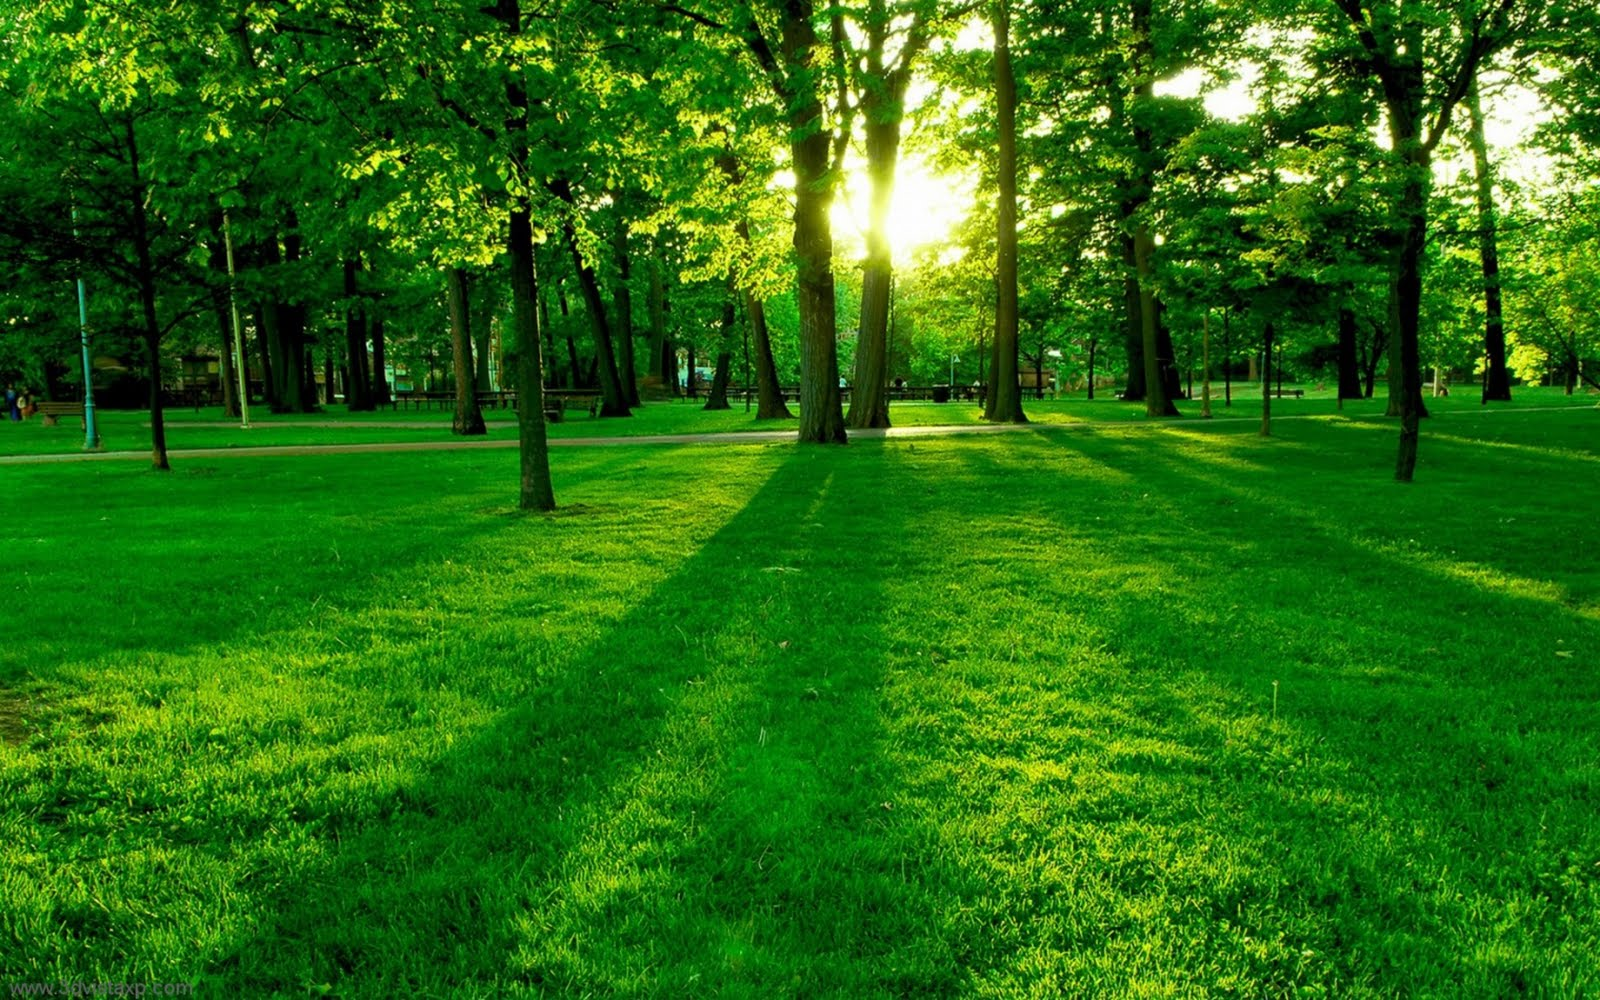 Green Nature HD Wallpapers Green Nature HD Wallpapers Check out the 1600x1000